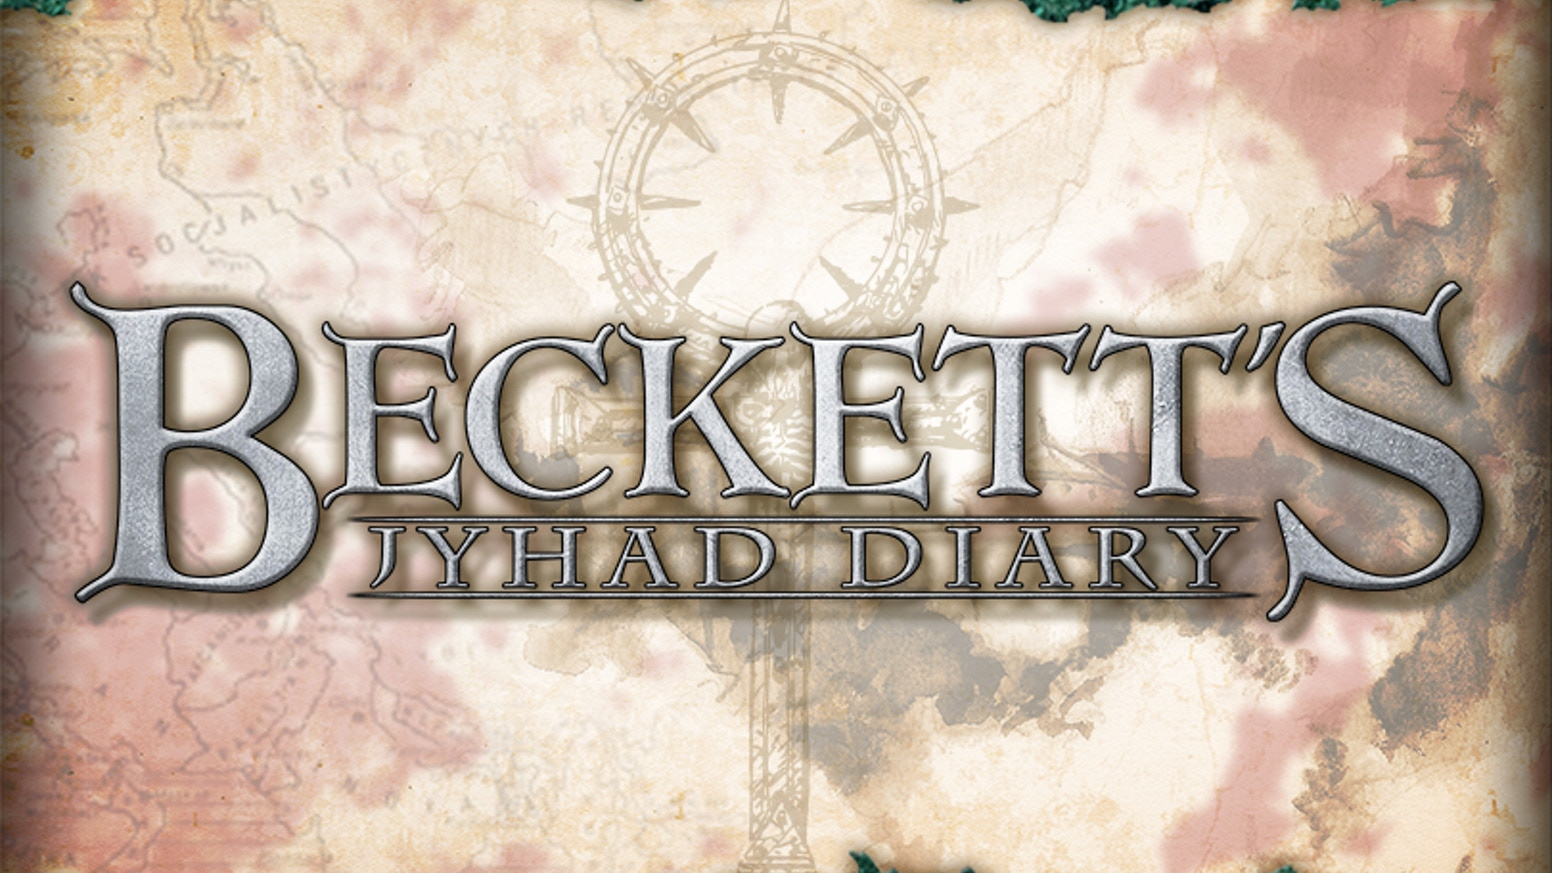 Even if you missed this KS, you can still pre-order the Deluxe V20 Beckett's Jyhad Journal: